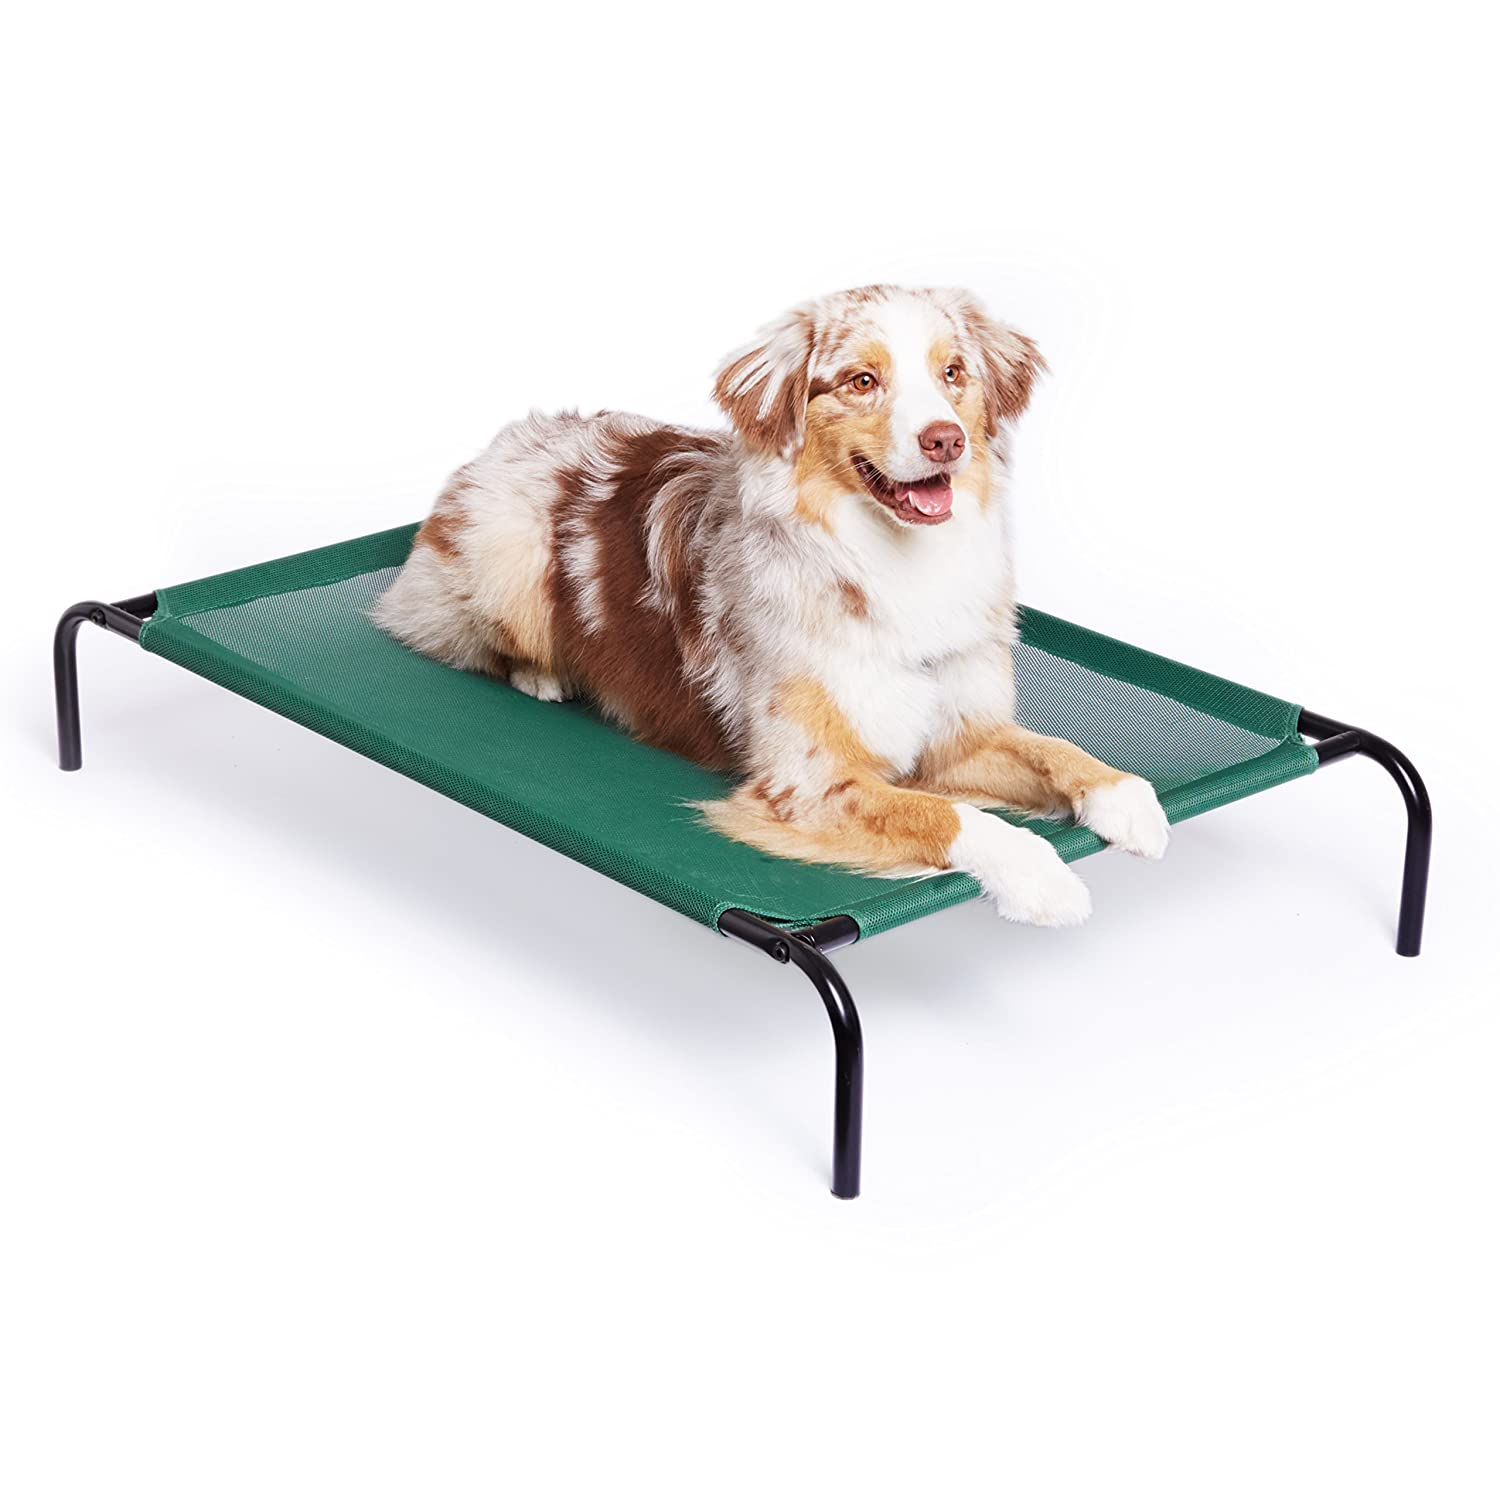 Buy Amazonbasics Elevated Cooling Pet Bed Large Online At Low